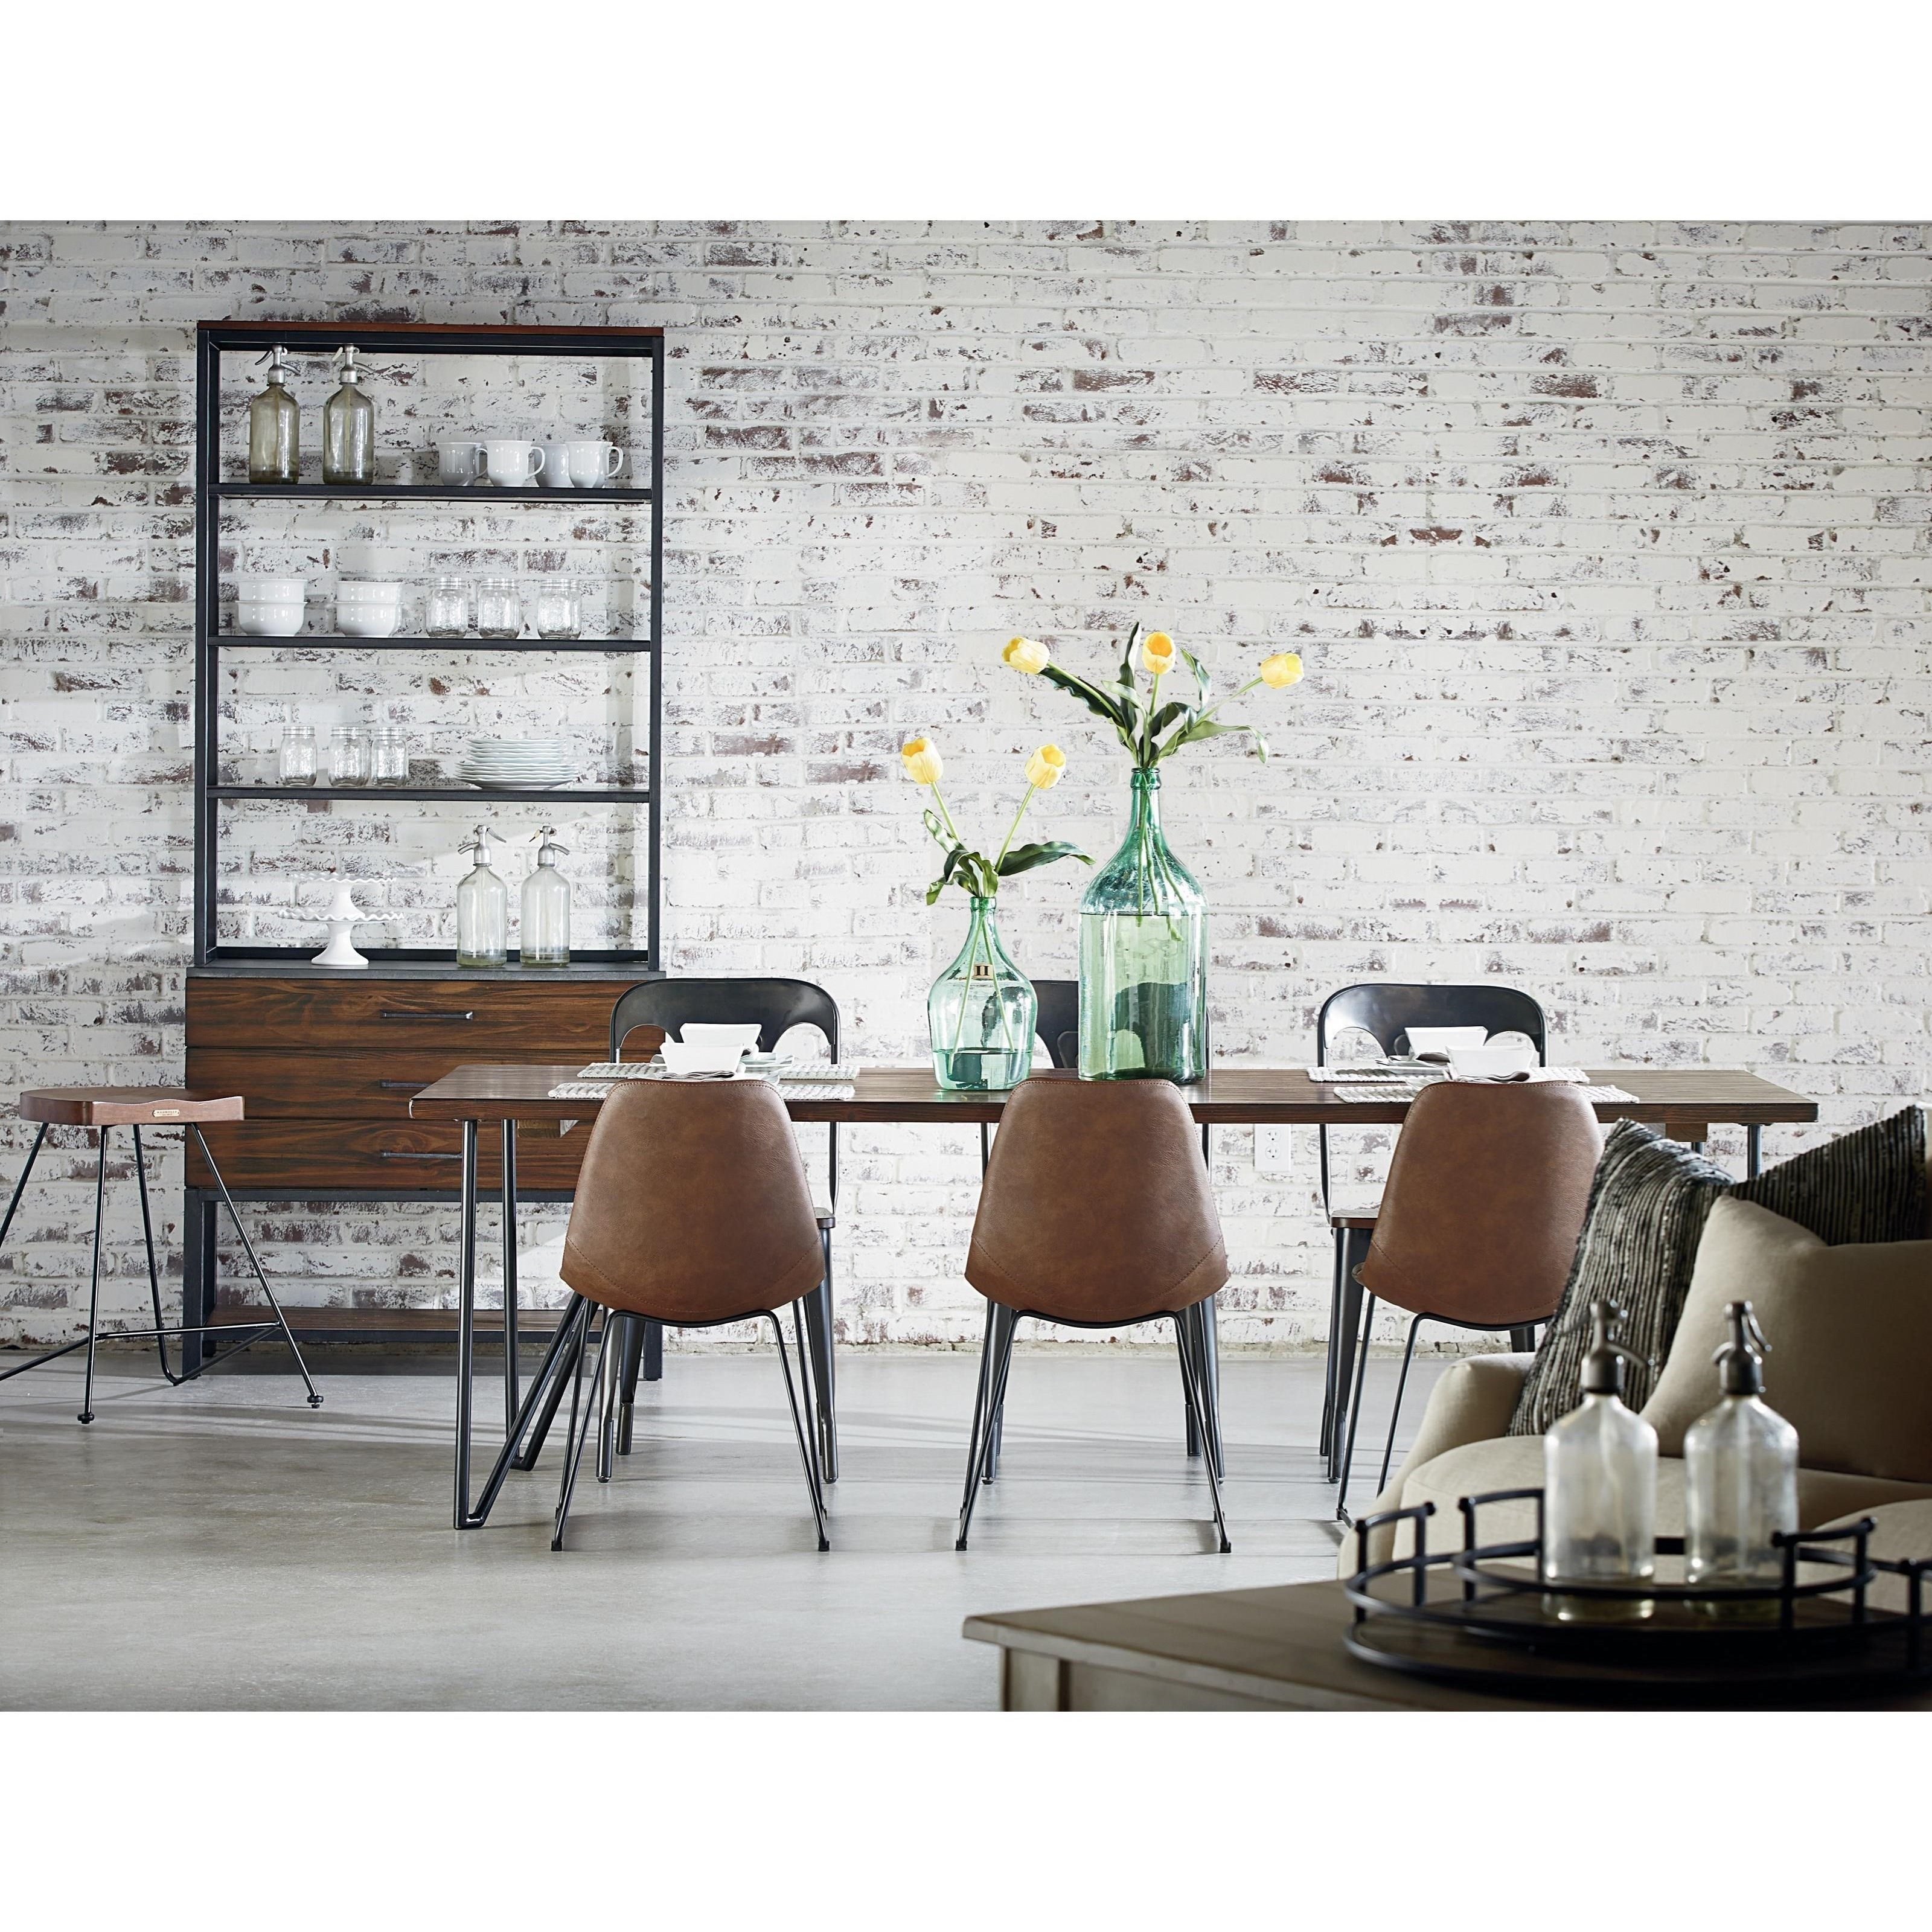 6 u0027 hairpin dining table with metal hairpin legs by magnolia home